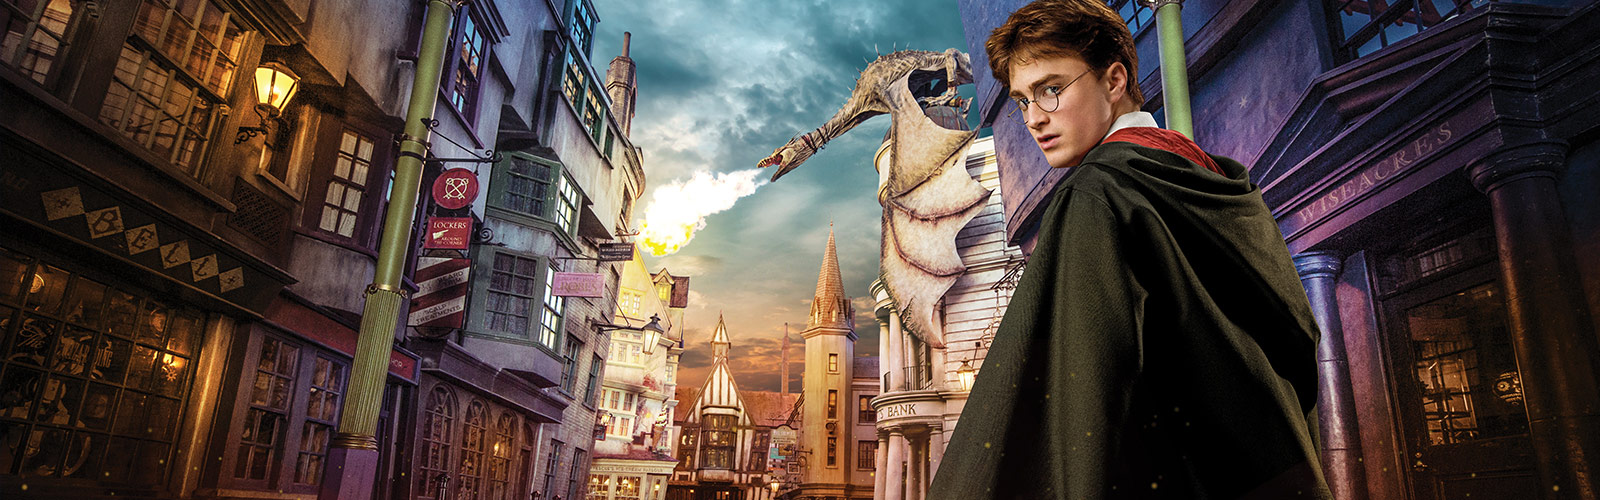 Harry Potter en Diagon Alley